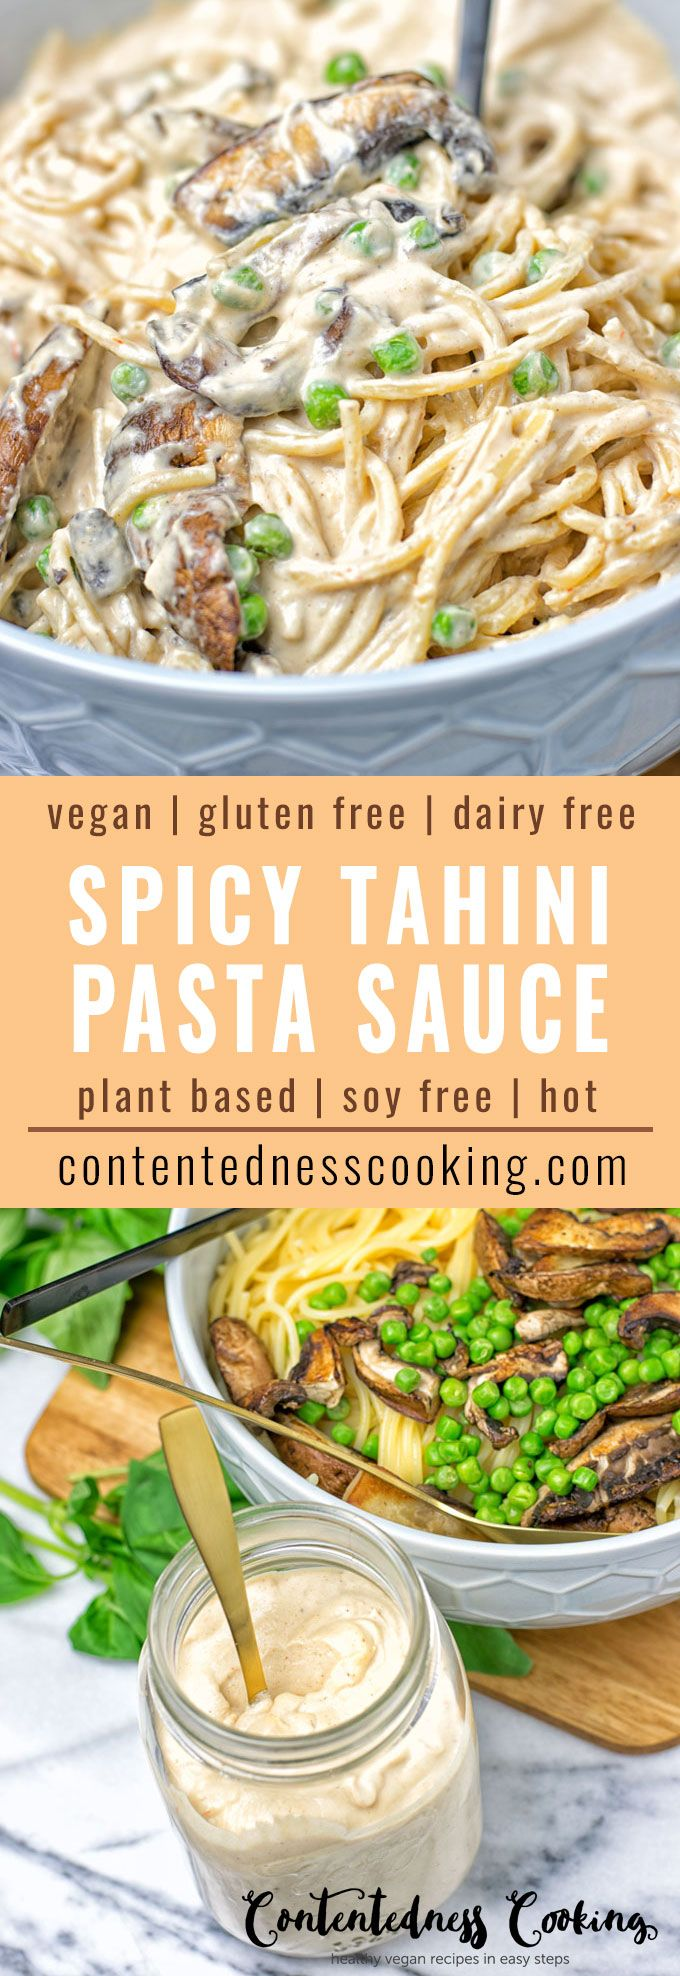 Spicy Tahini Pasta Sauce requires only 4 ingredients for an incredibly easy lunch or dinner. Serve this with pasta, on burgers or wraps and so much more.